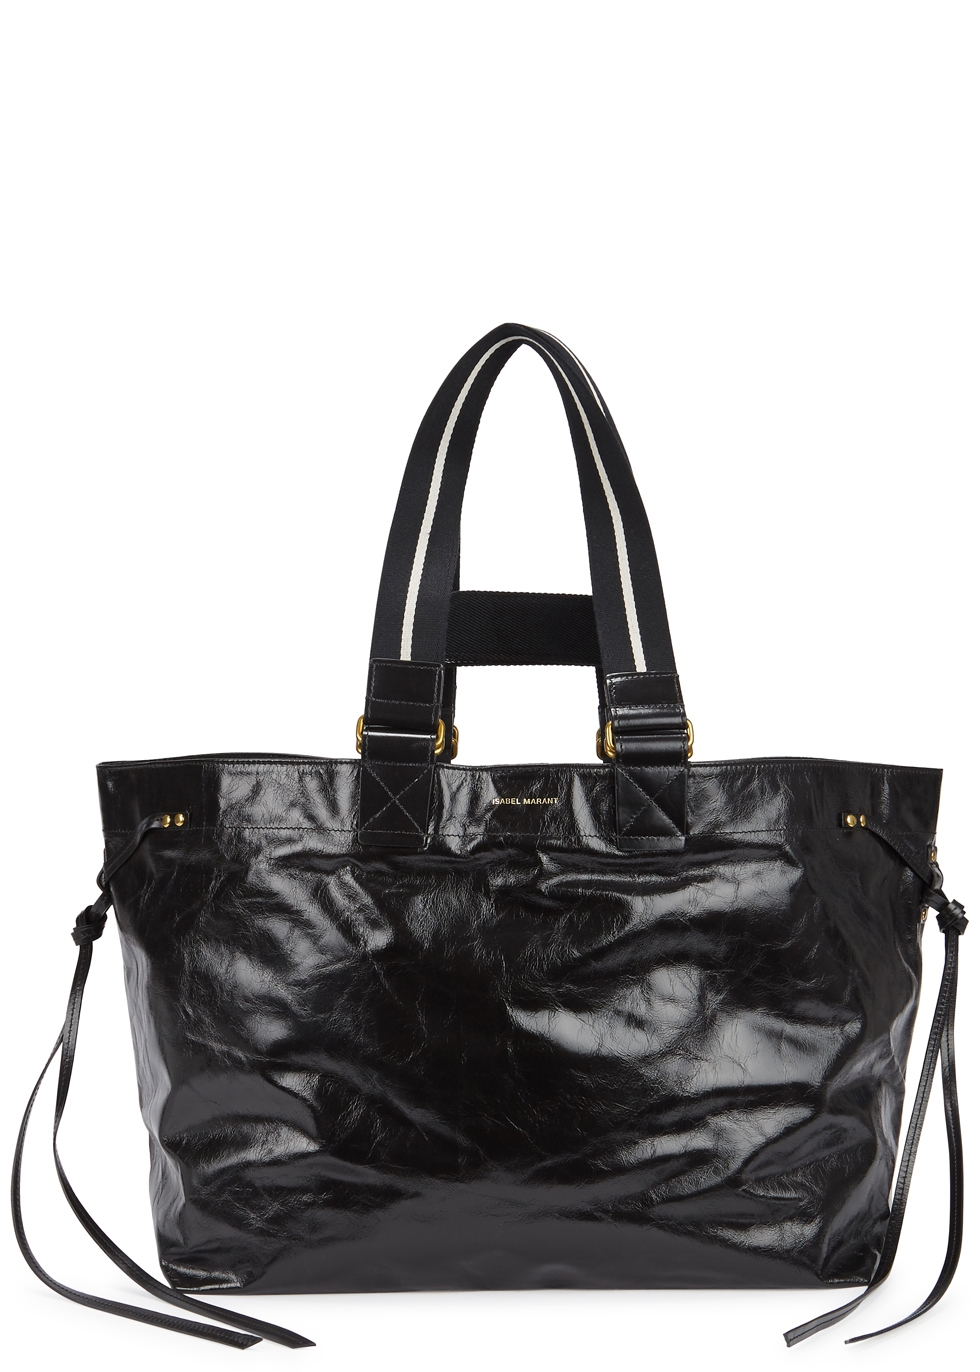 ISABEL MARANT WARDY BLACK GLOSSED LEATHER TOTE